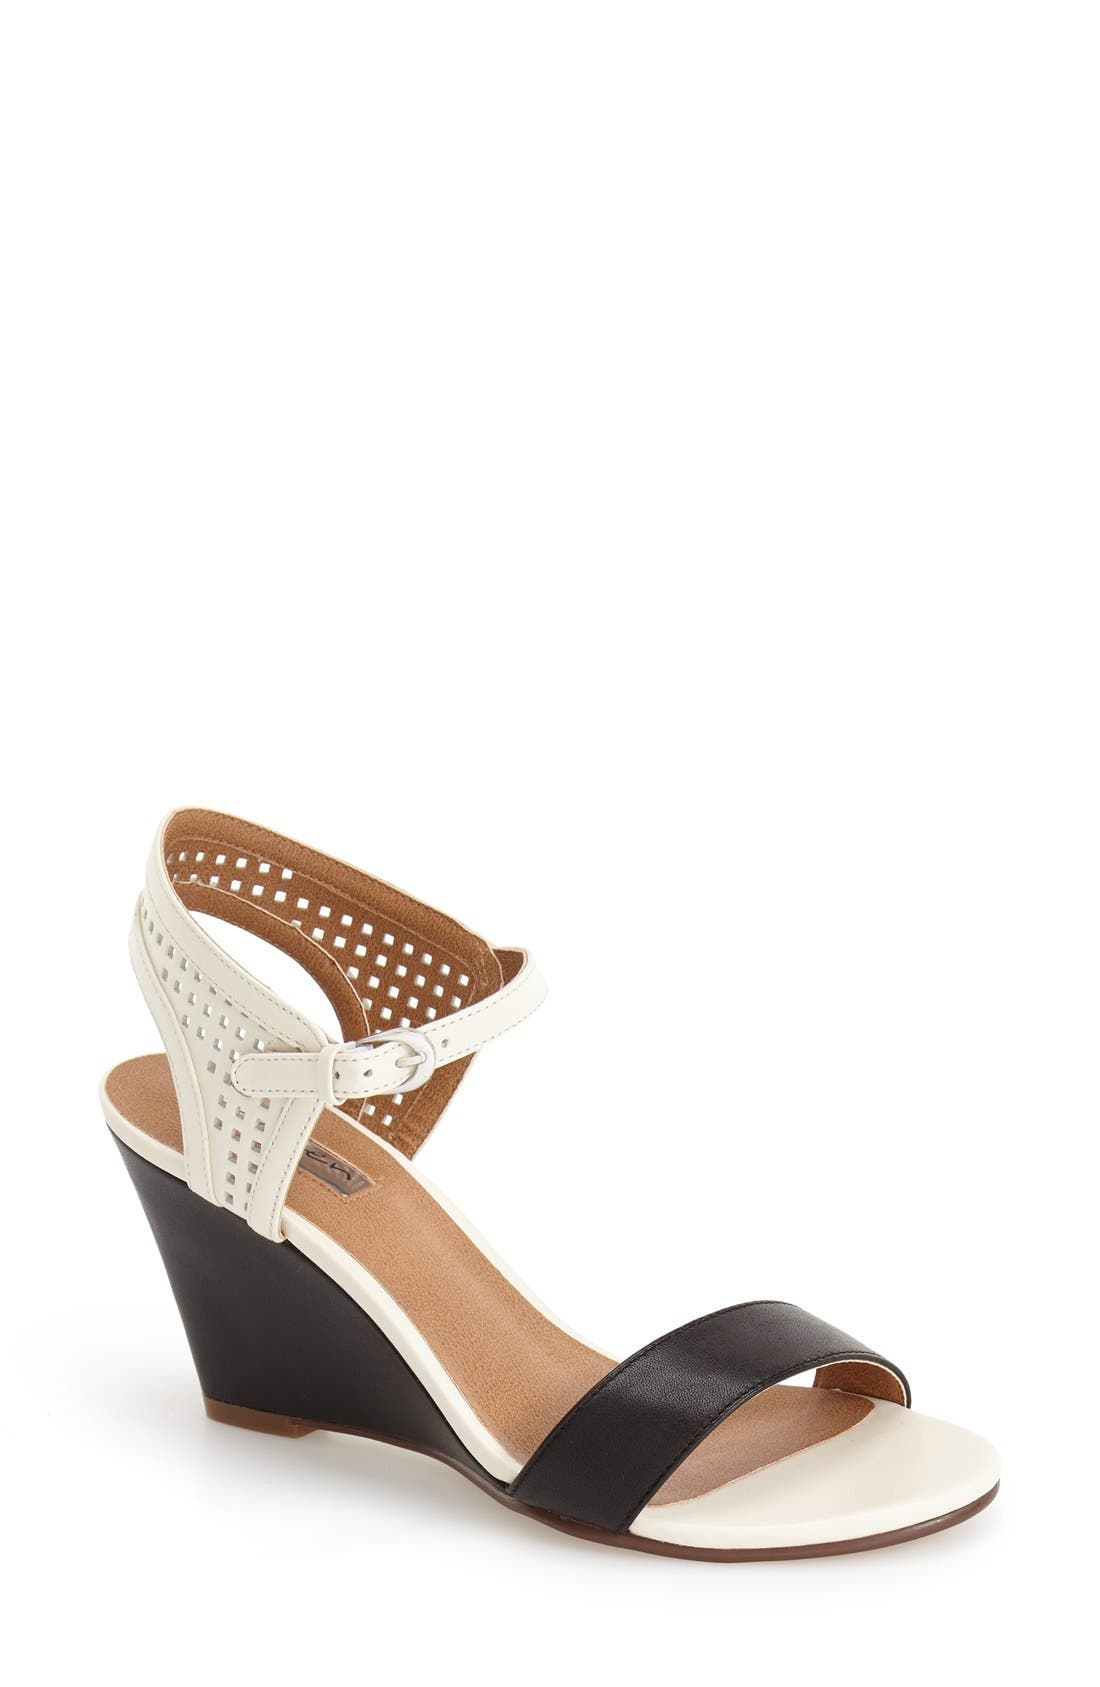 Main Image - Halogen 'Helen' Perforated Leather Ankle Strap Wedge Sandal (Women)